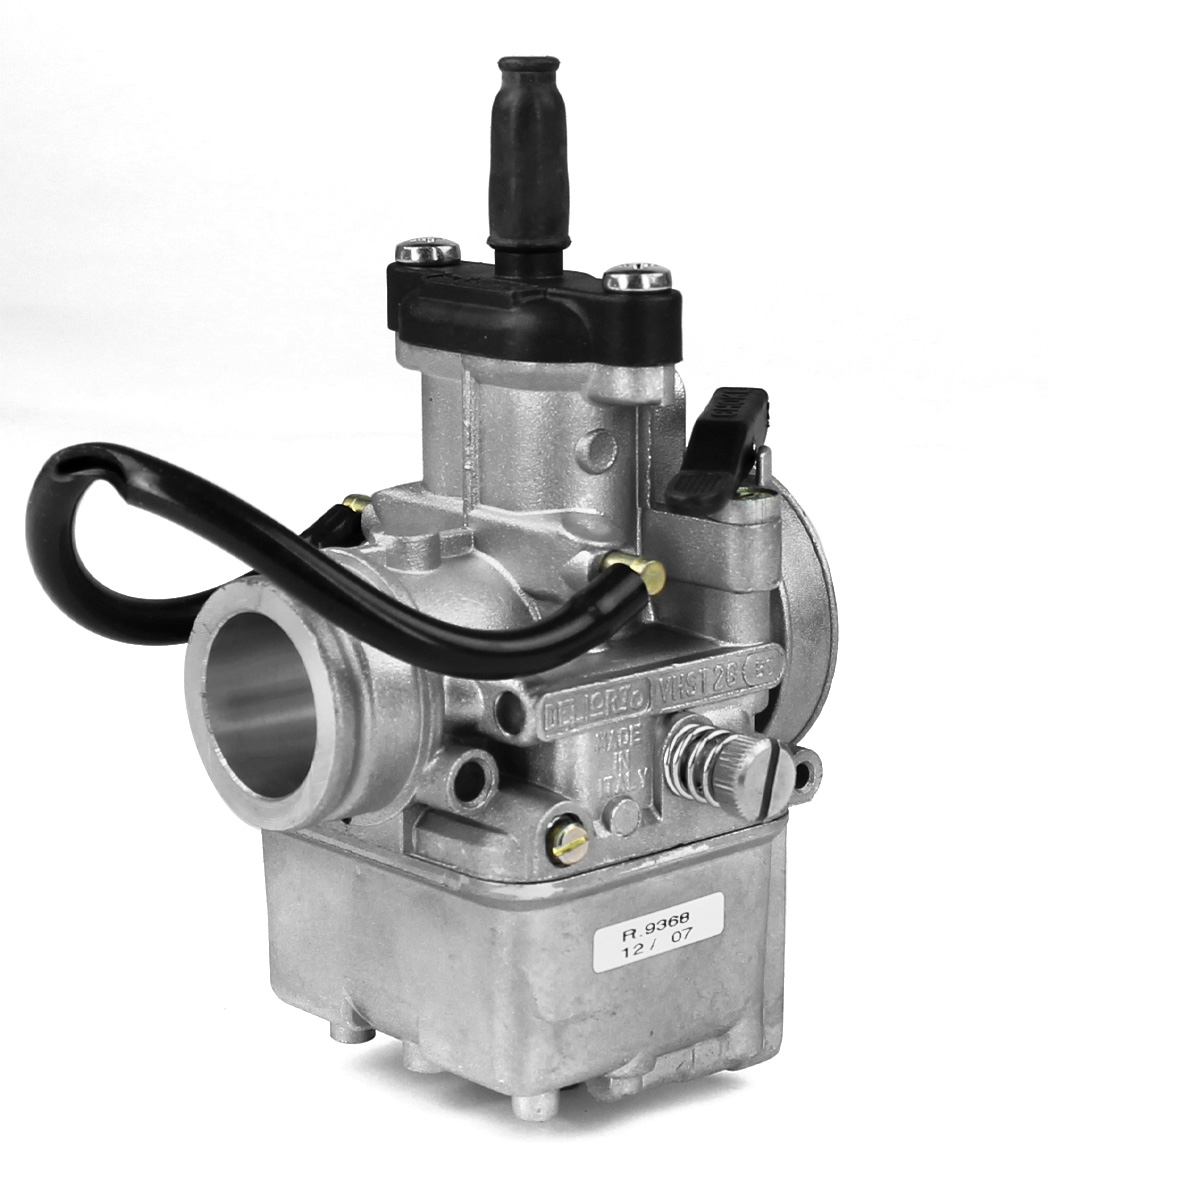 Carburateur Dell'orto Vhst 26 Bs 4t (PIT Bike-Dax-City 107-150)